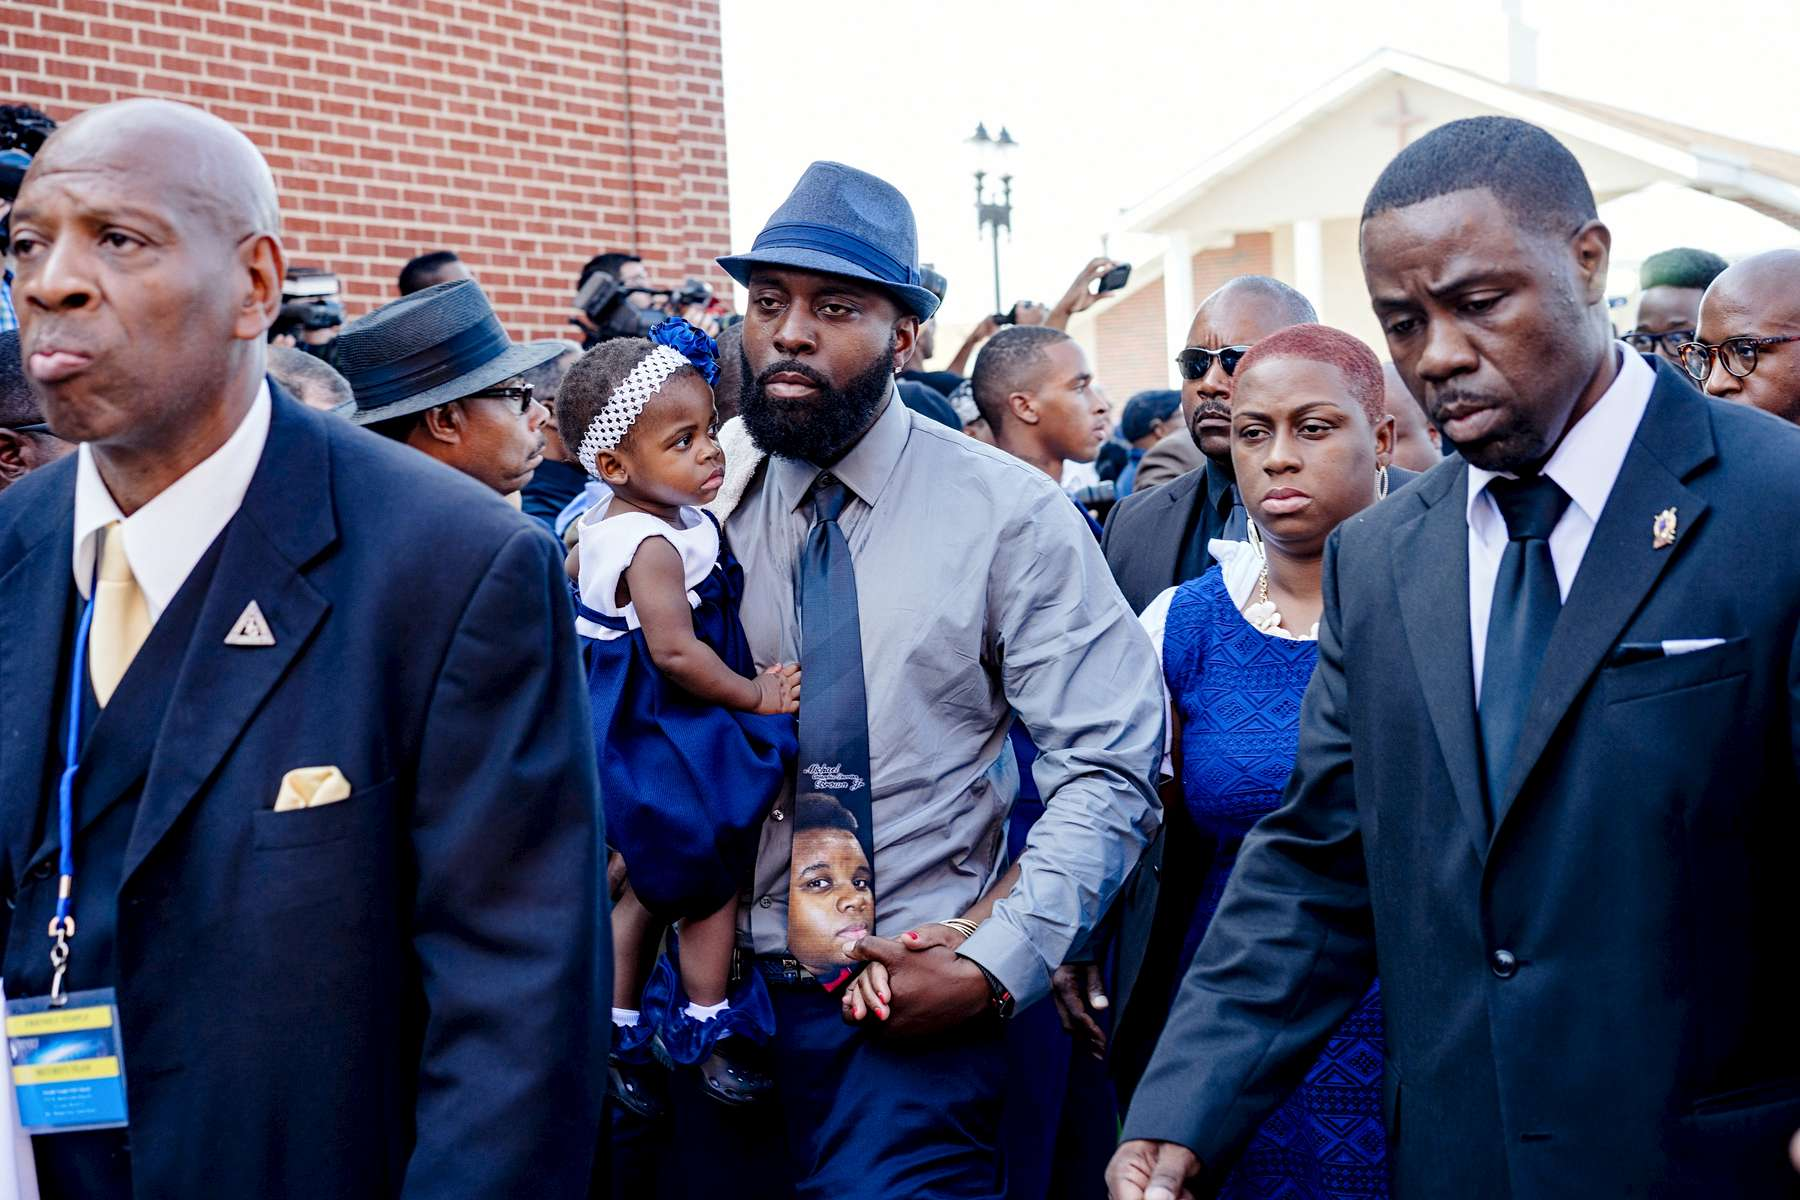 {quote}A Father's Solemn Walk{quote}Flanked by family members and the Nation of Islam, Michael Brown Sr. walks into the Friendly Temple Missionary Baptist Church to attend the funeral service of his son Michael Brown Jr.